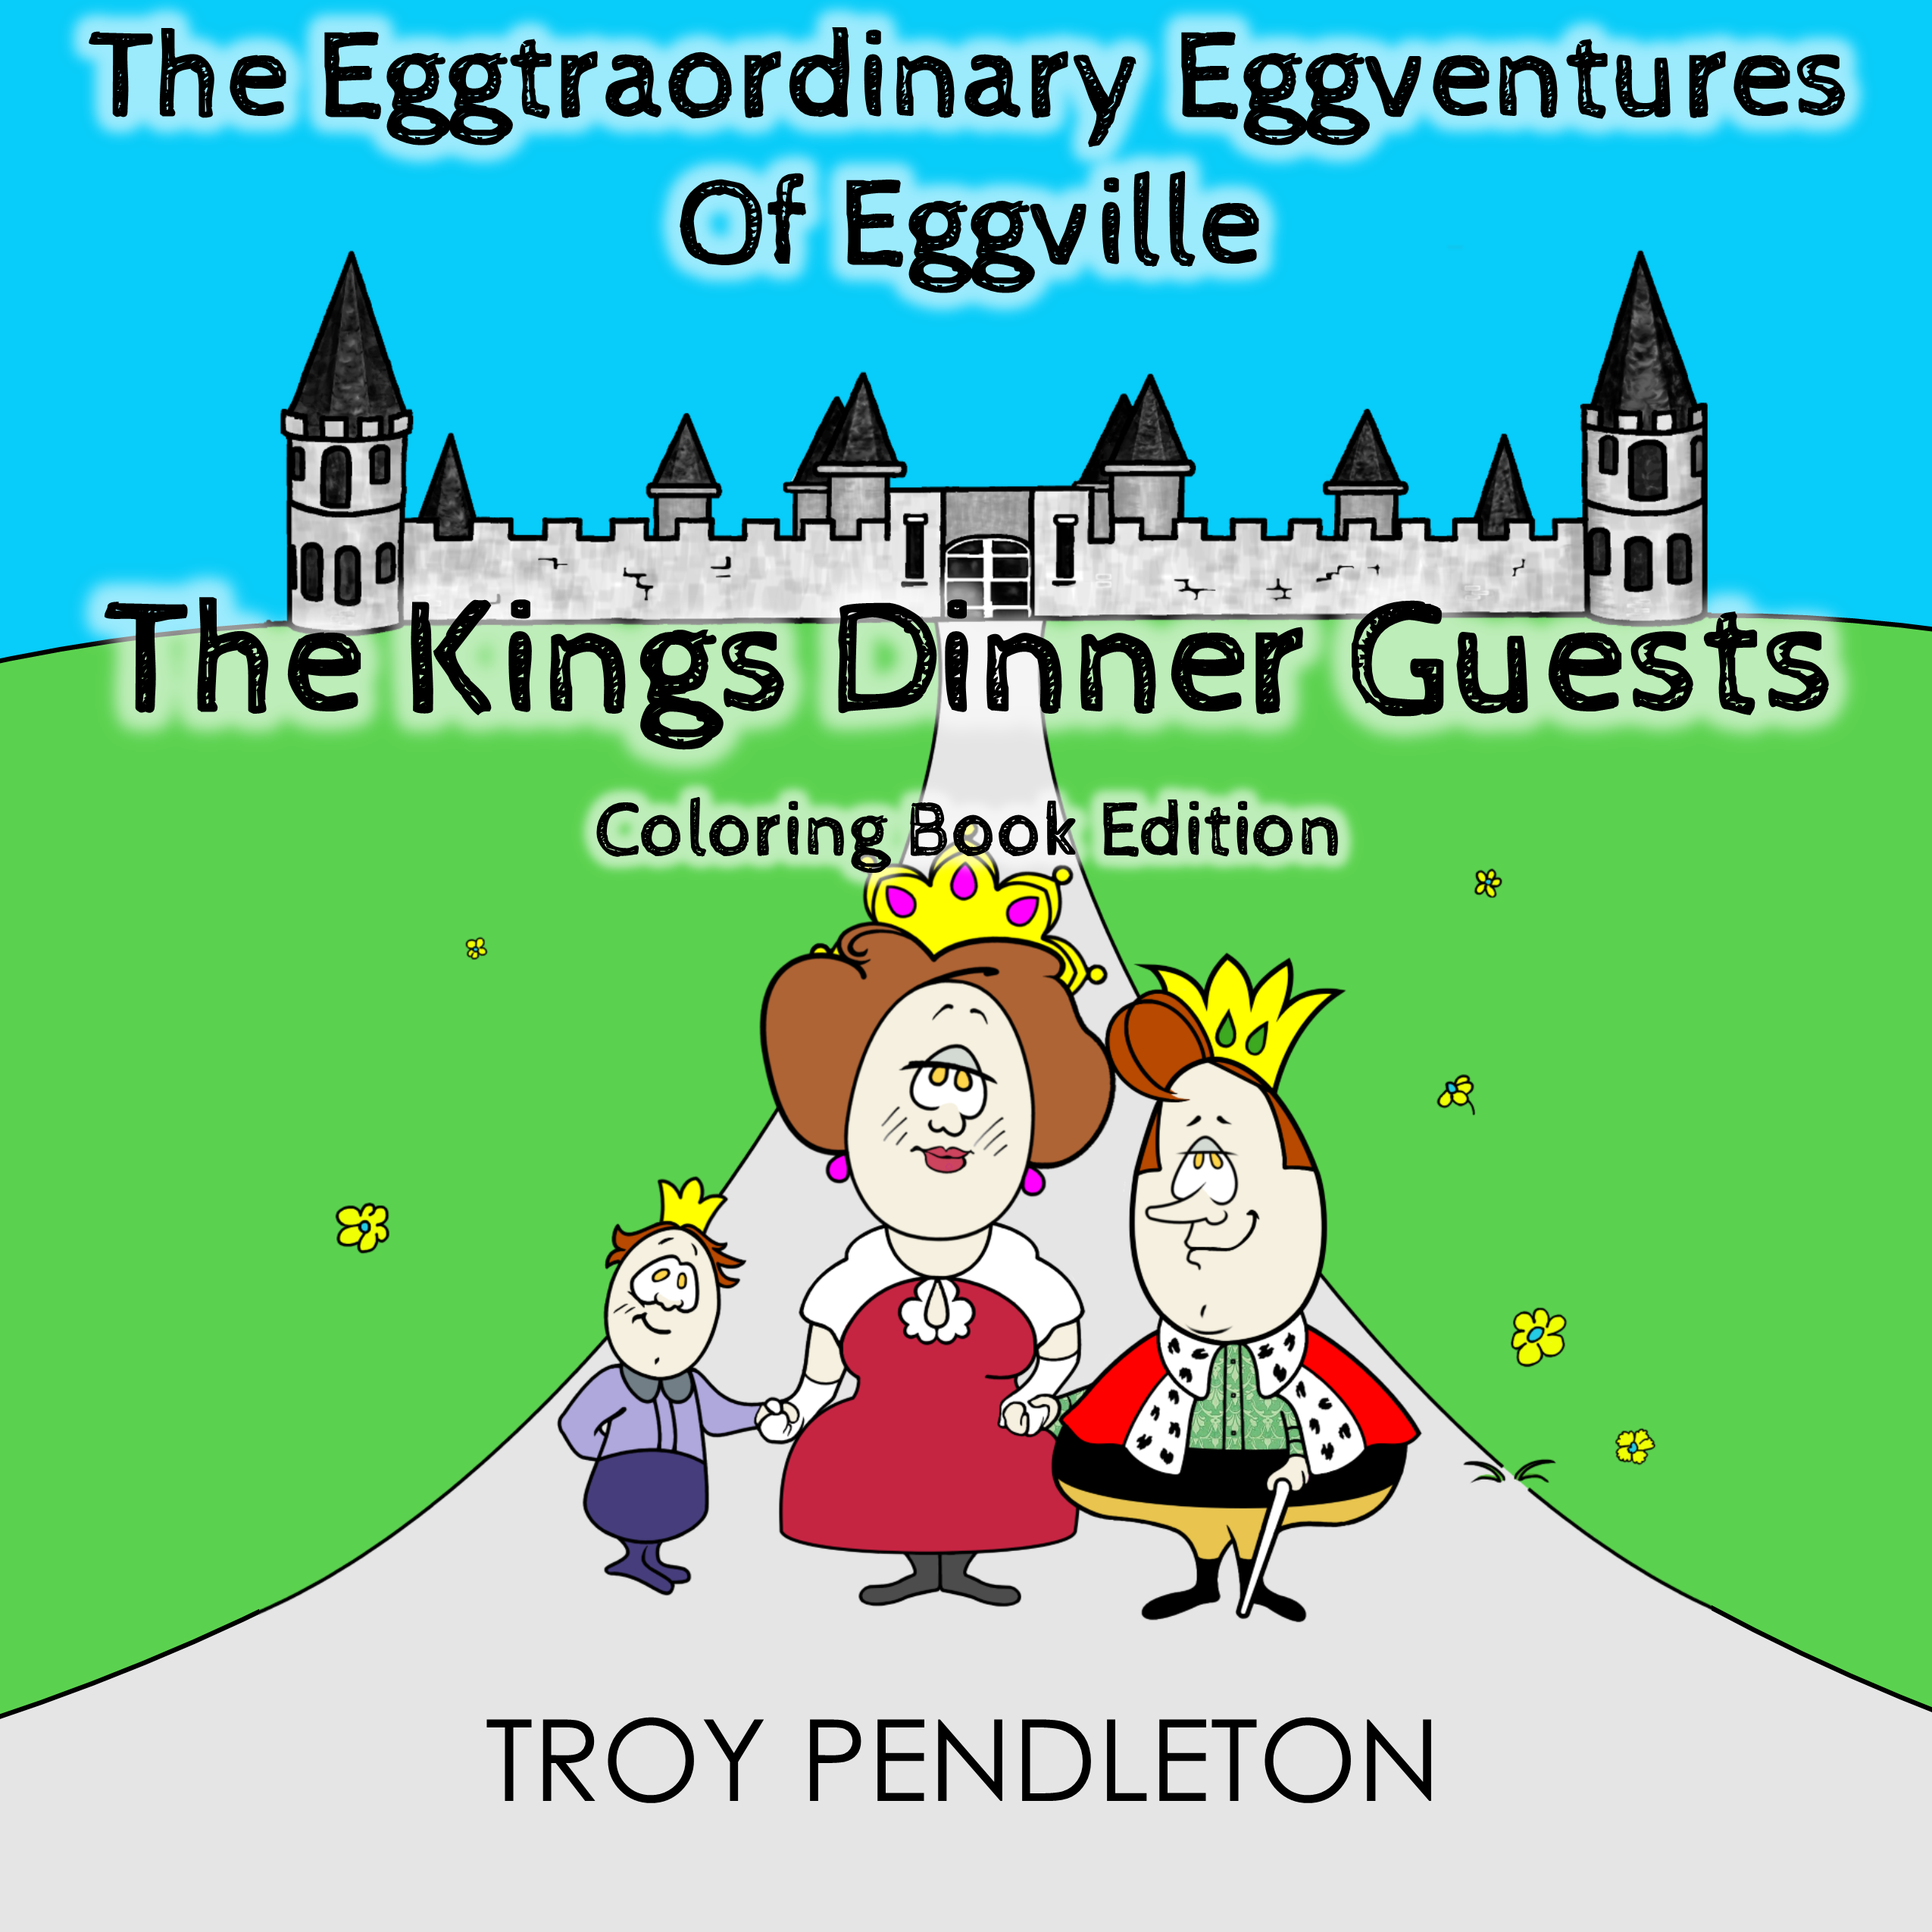 The Kings Dinner Guest_Coloring Book Edition_web